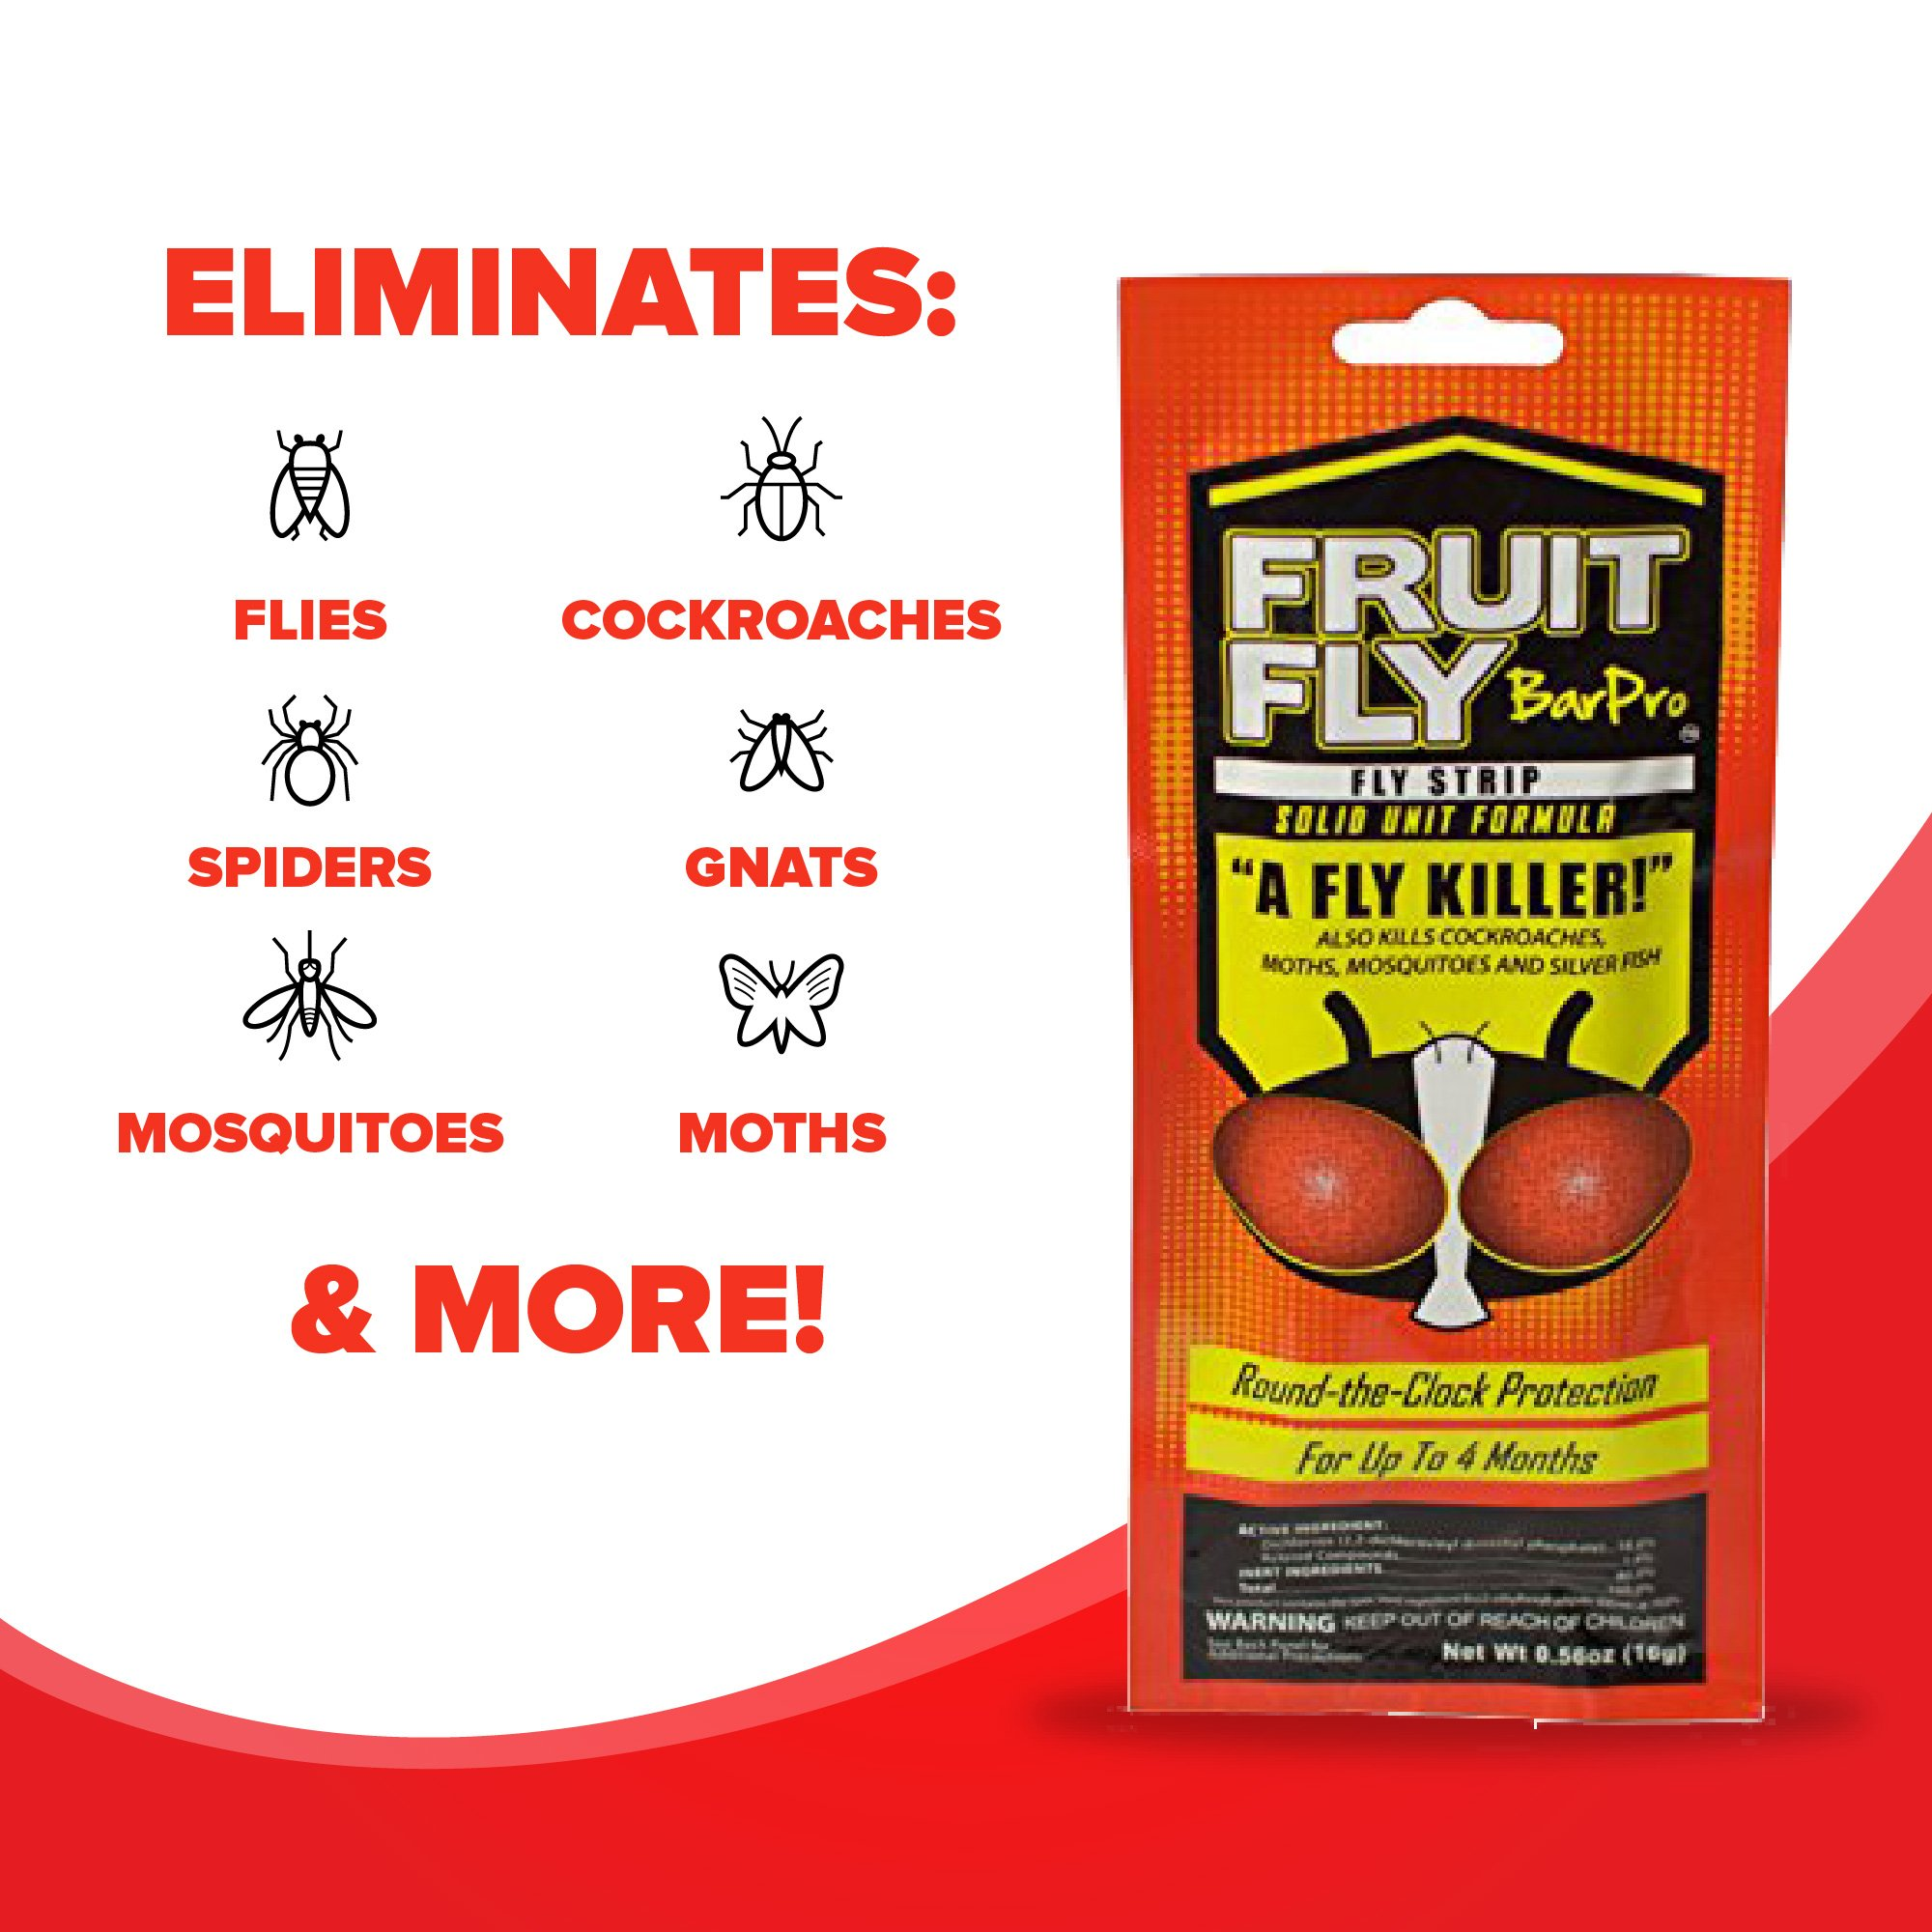 Fruit Fly BarPro – 4 Month Protection Against Flies, Cockroaches, Mosquitos & Other Pests – Portable for Indoor & Outdoor Use by Fruit Fly BarPro (Image #5)